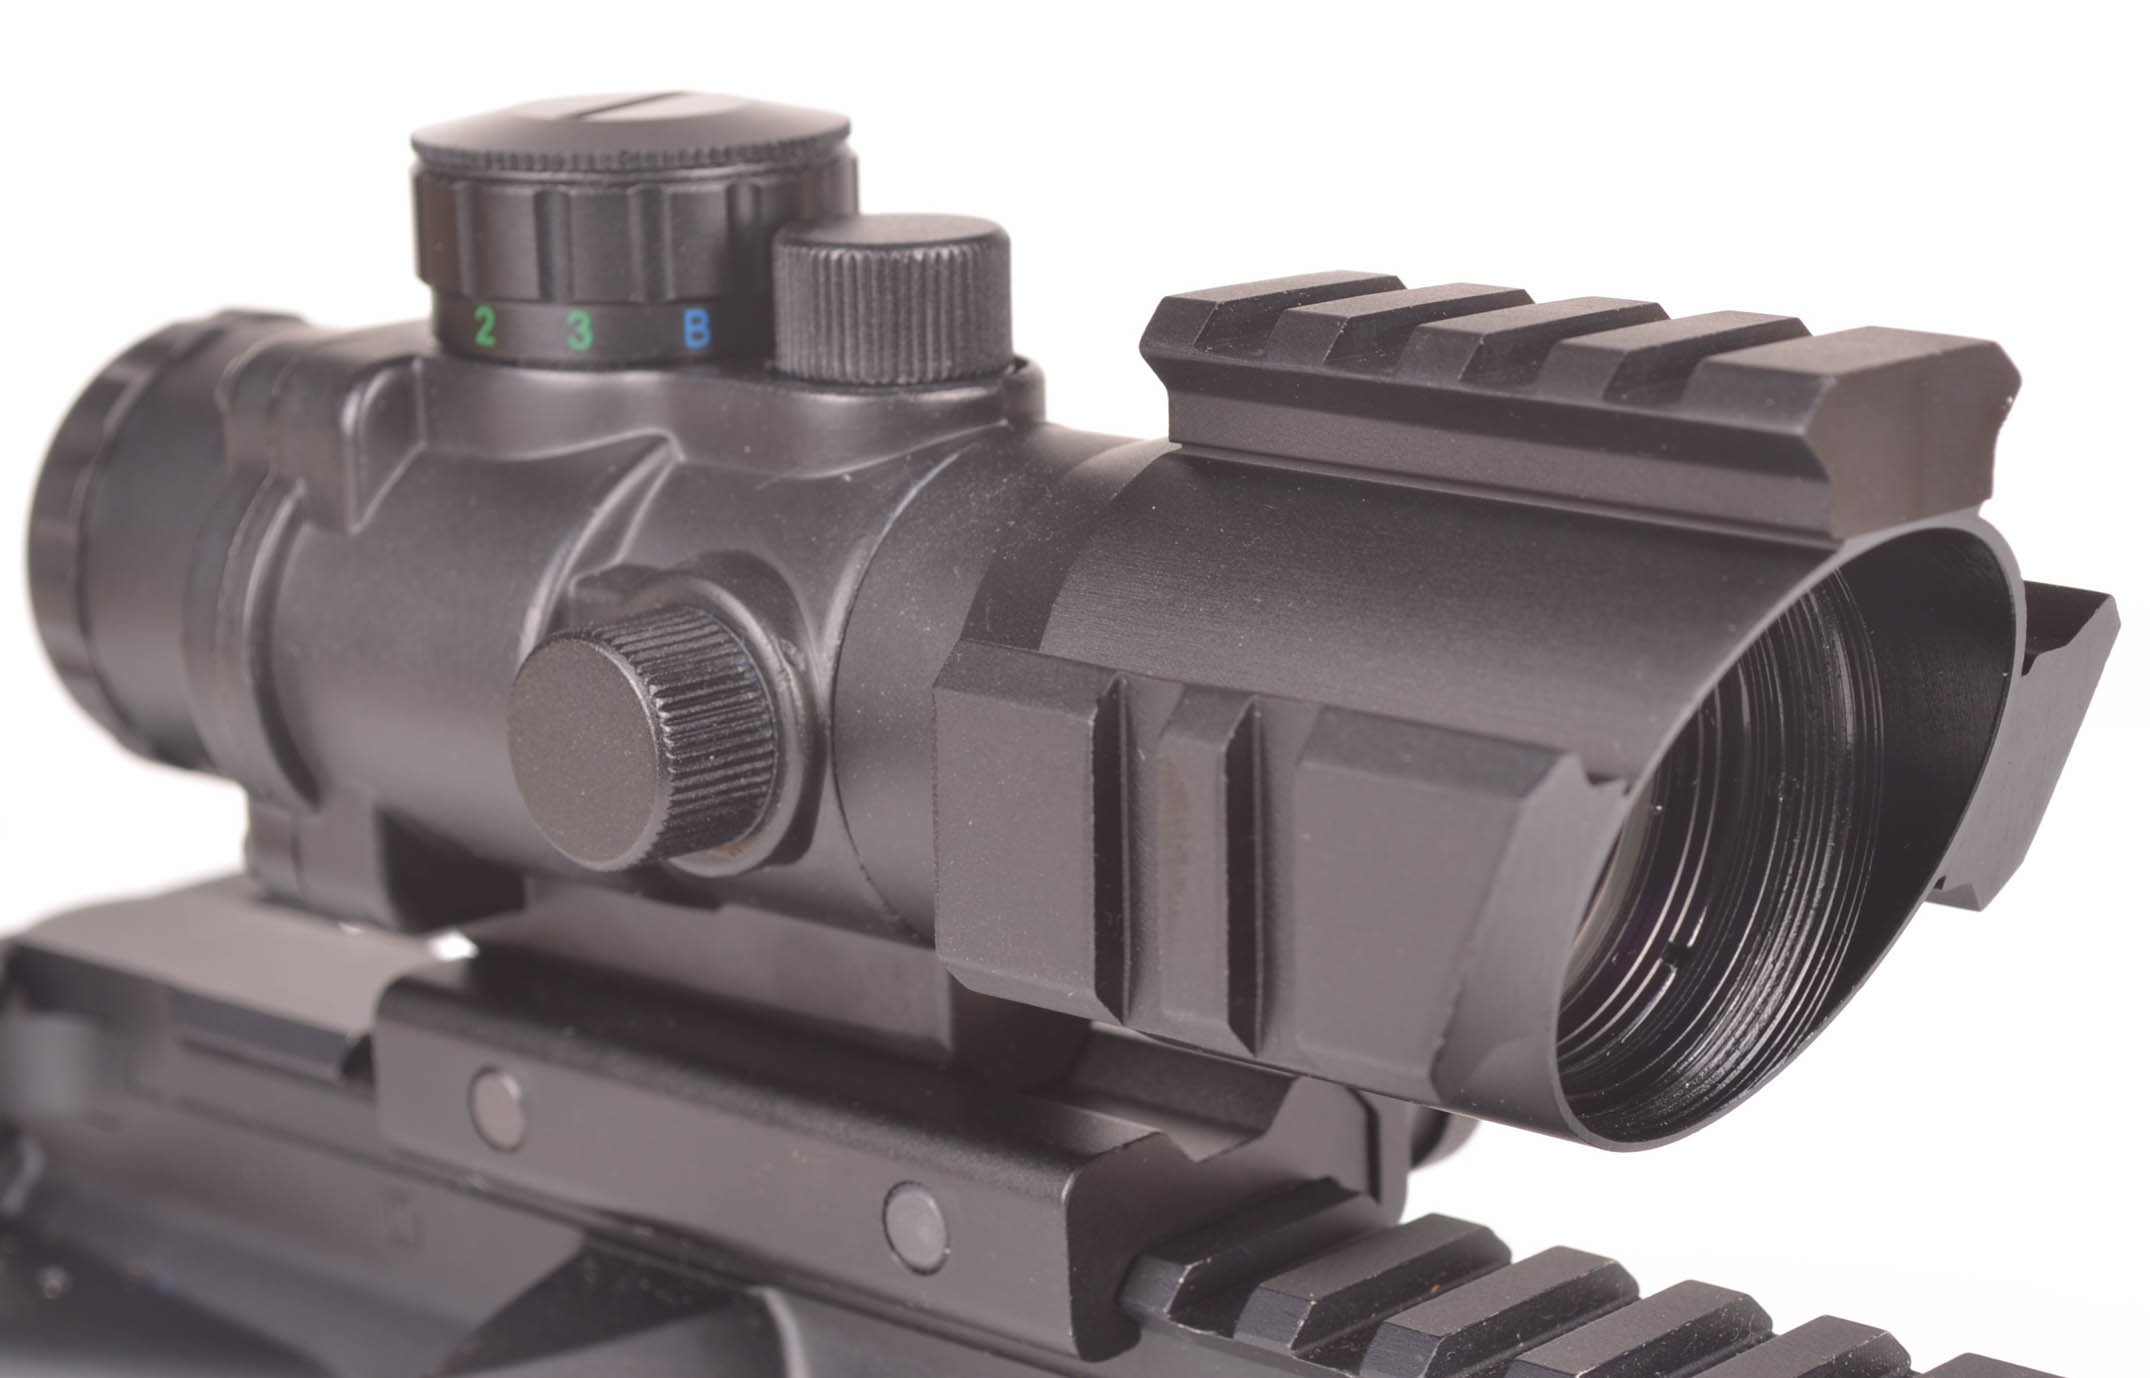 OZARK ARMAMENT 4X Magnified Optic with Illuminated BDC Reticle - Rifle Scope by OZARK ARMAMENT